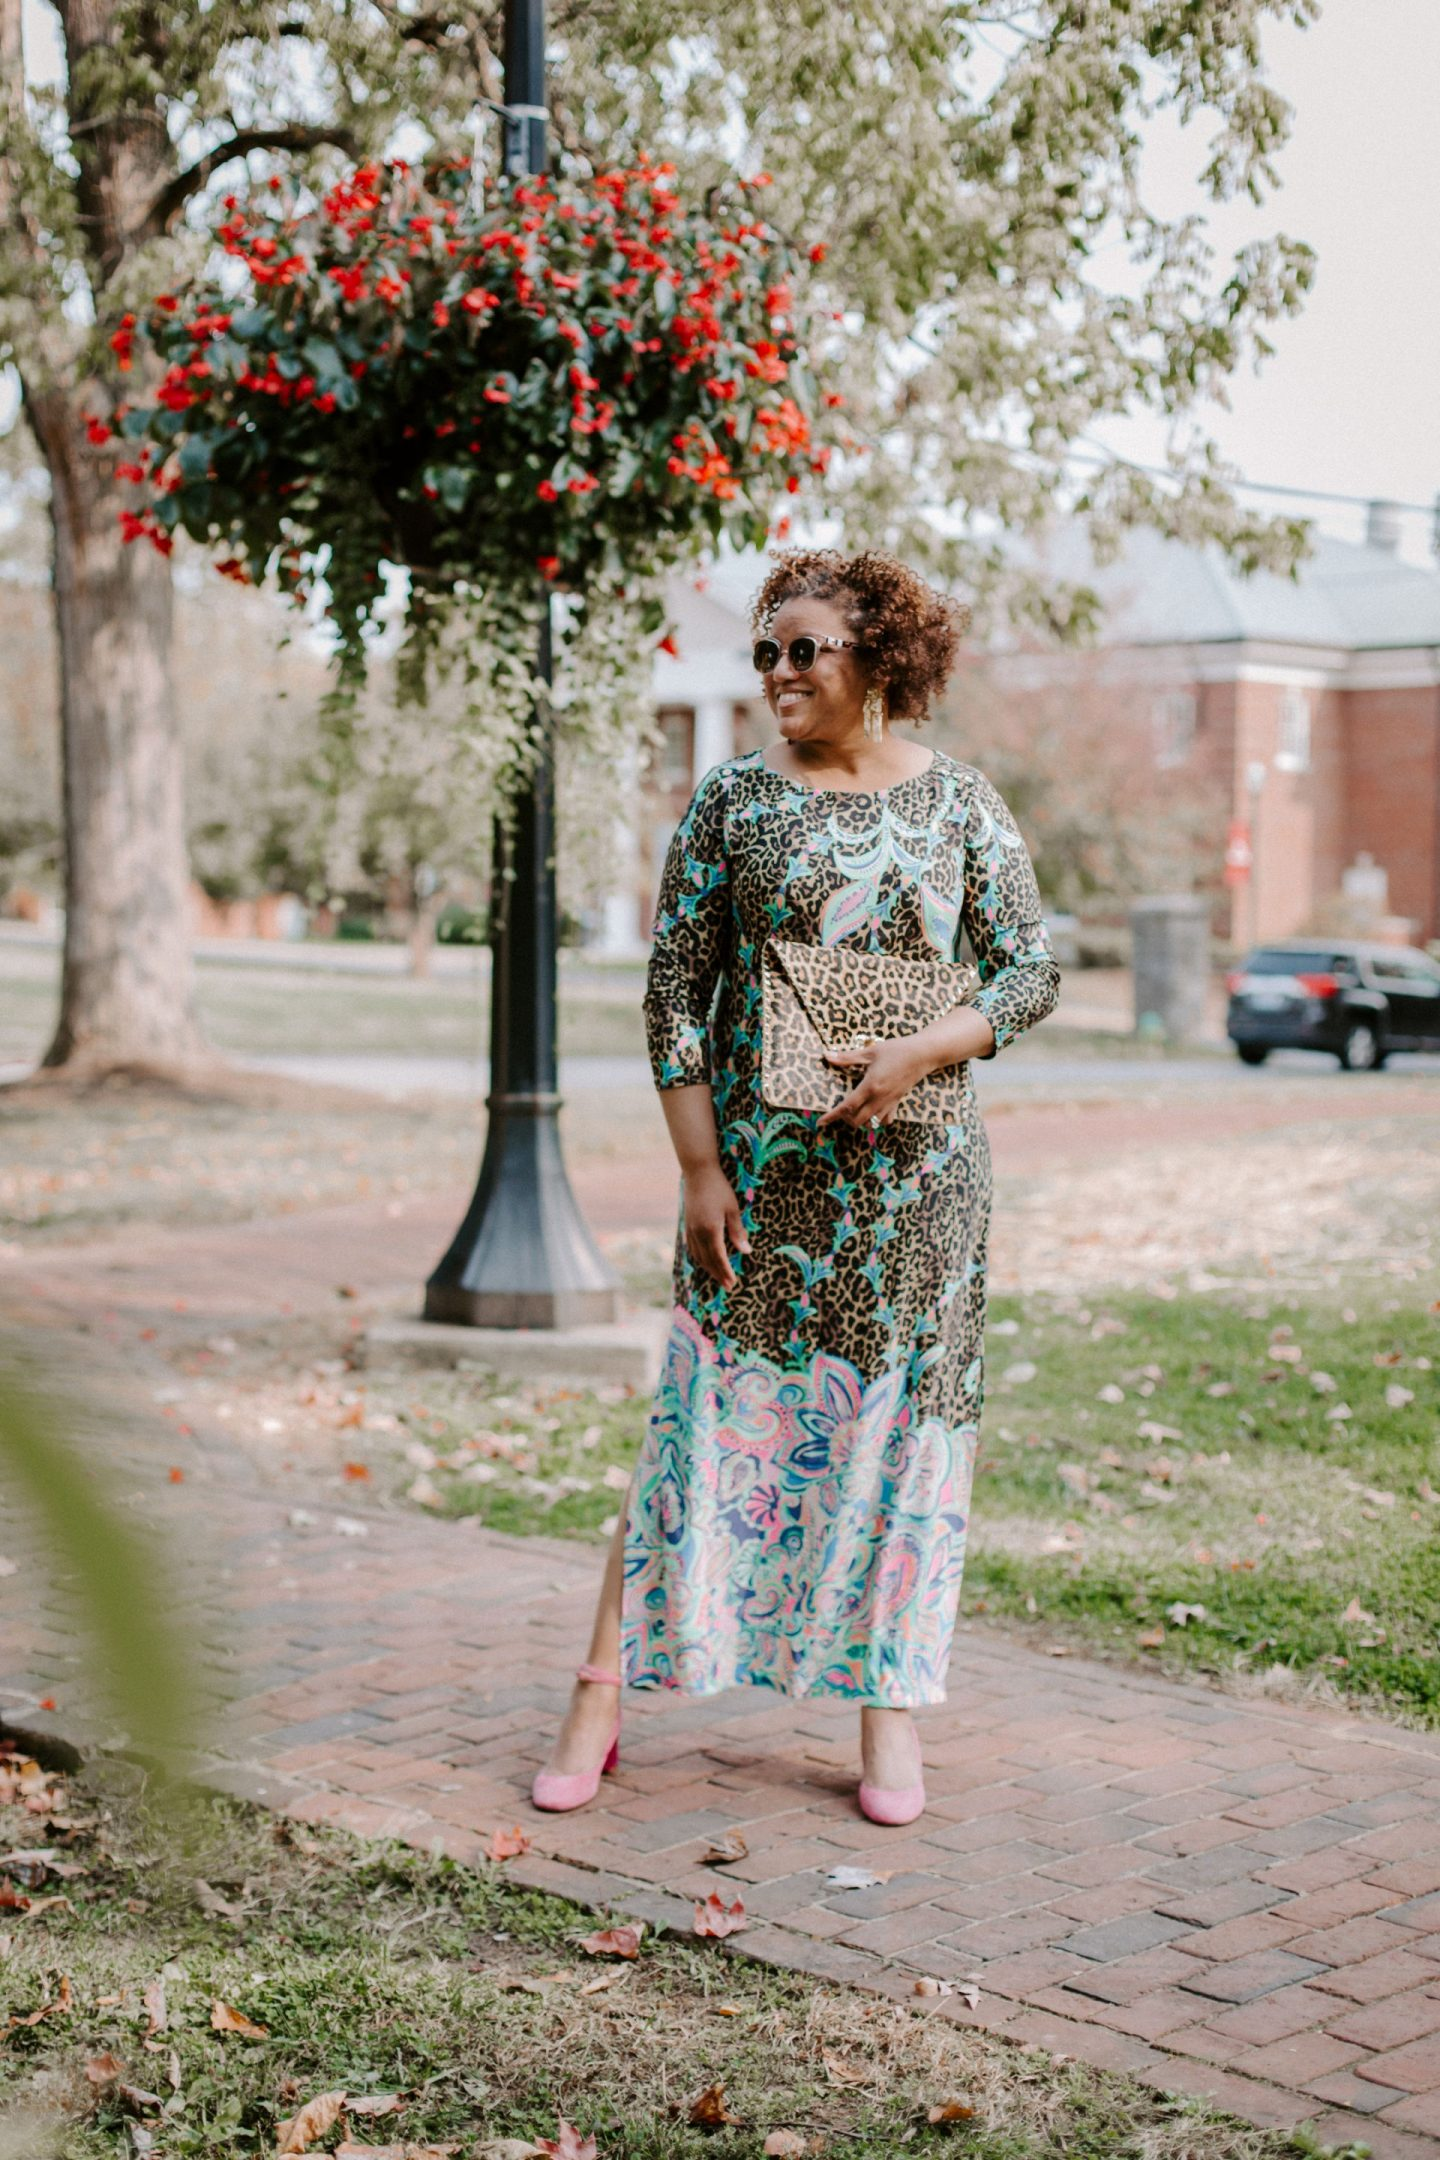 Lilly Pulitzer Dress by popular Kentucky fashion blog, Really Rynetta: image of a woman wearing a Lilly Pulitzer UPF 50+ ChillyLilly Seraline Maxi Dress, pink suede block heel shoes, Kendra Scott Holland Statement Earrings and holding a Kate Spade leopard print clutch.